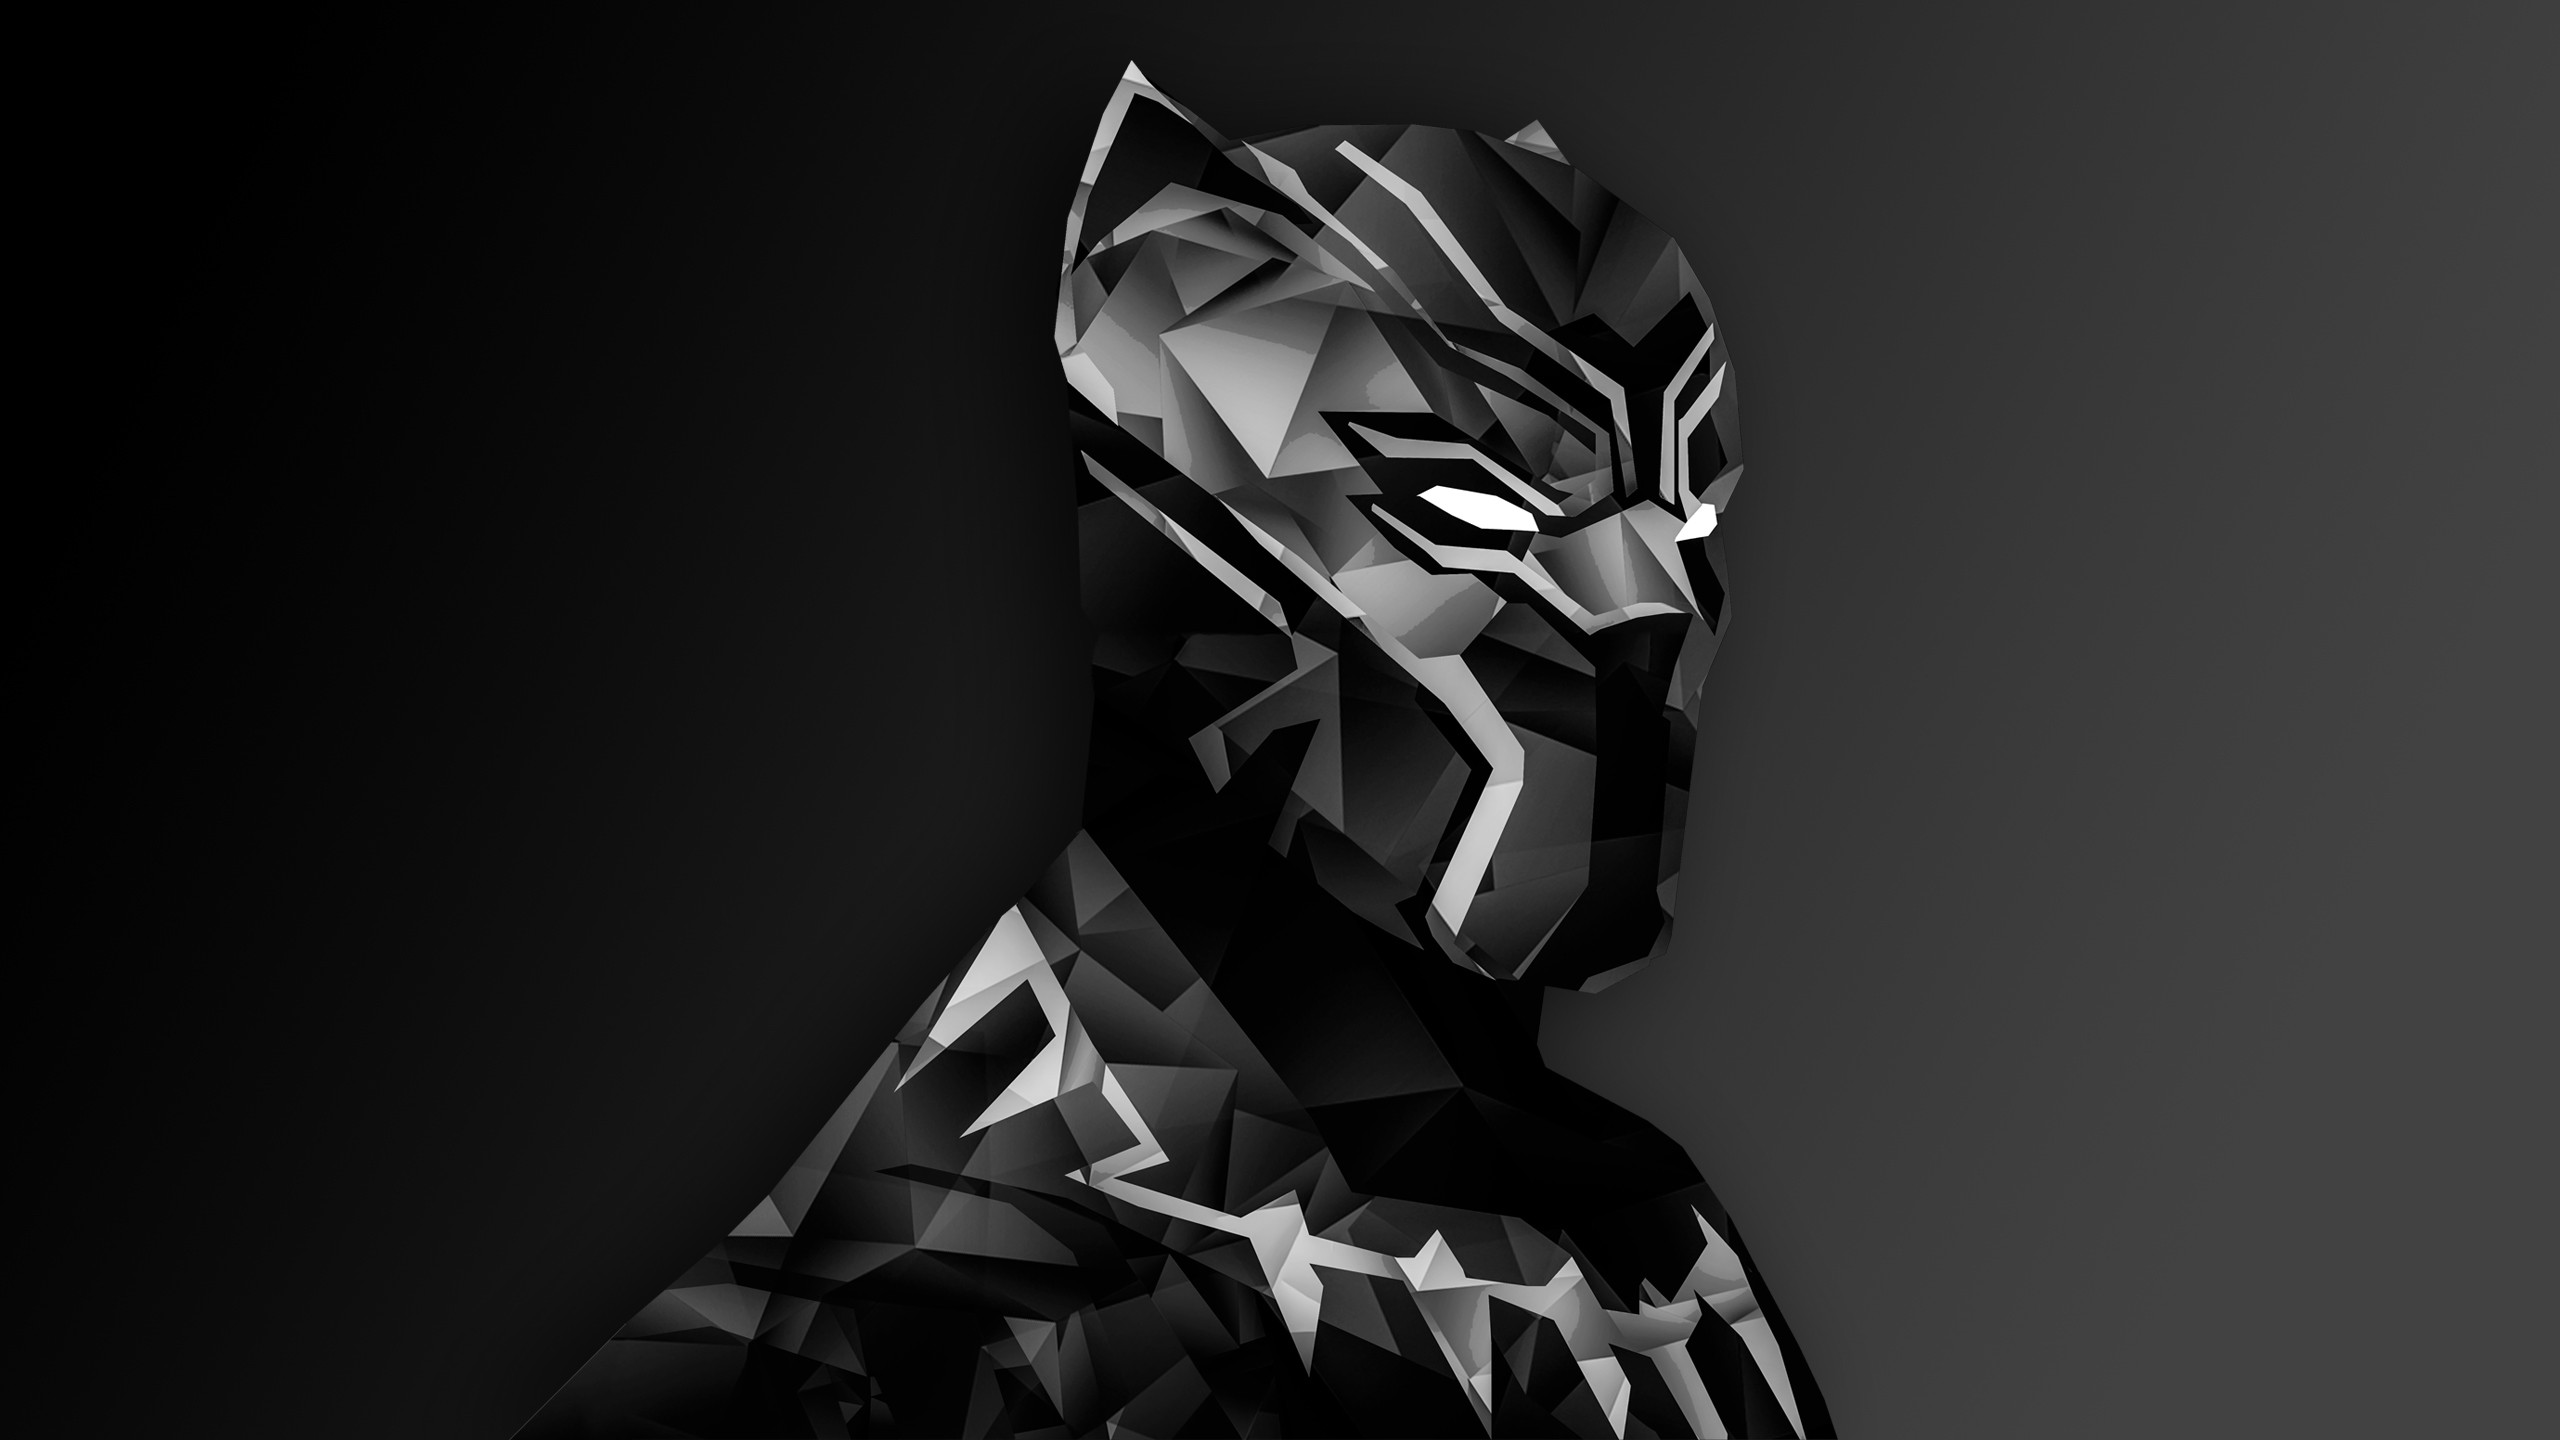 Populaire Black Panther Full HD Wallpaper and Background Image | 2560x1440  DD84